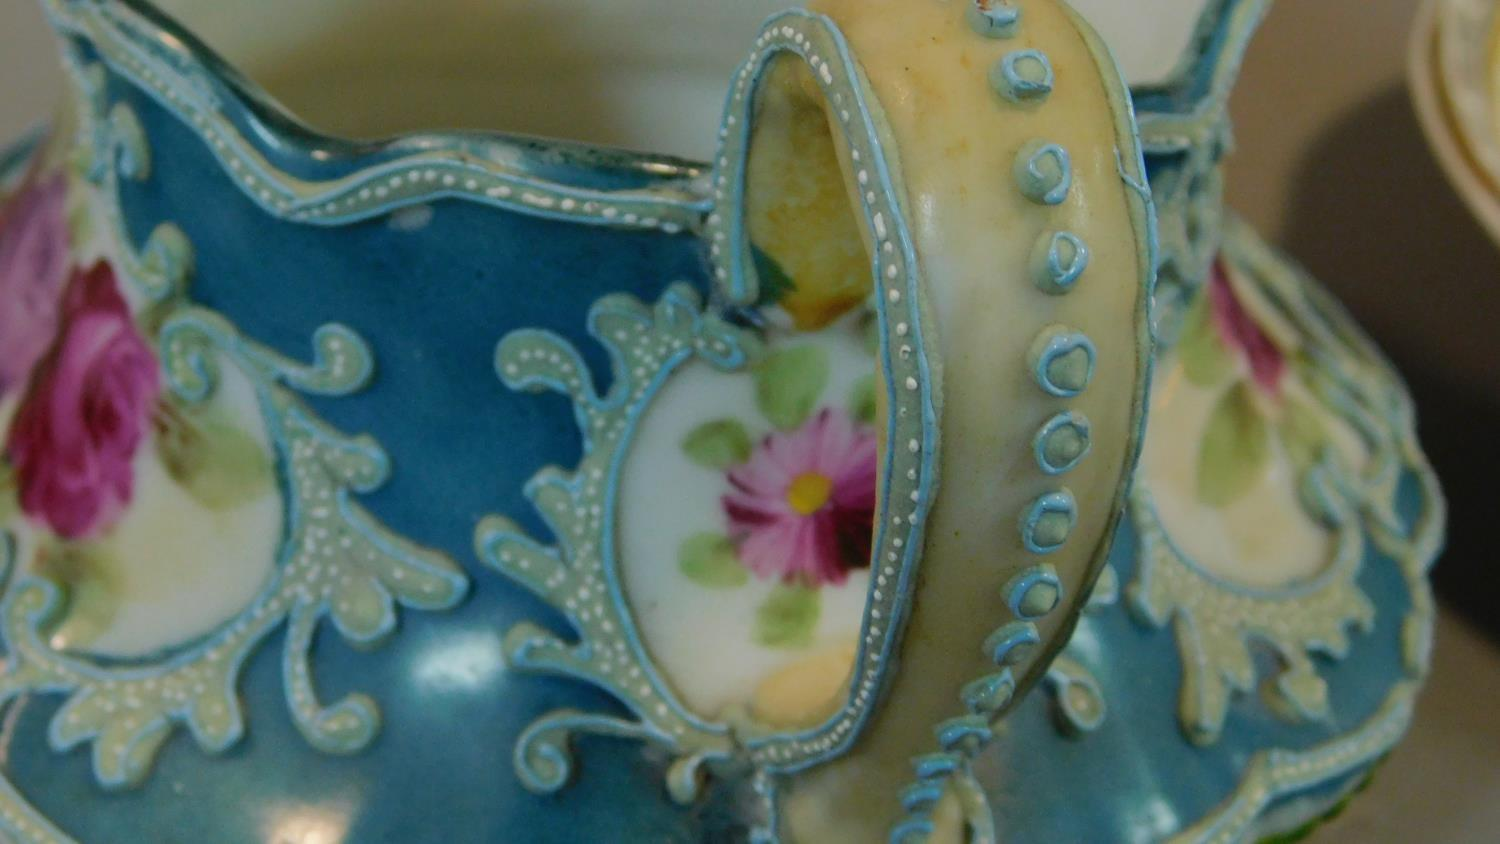 A miscellaneous collection of Victorian and later porcelain, vase, cups, saucers etc. - Image 5 of 14